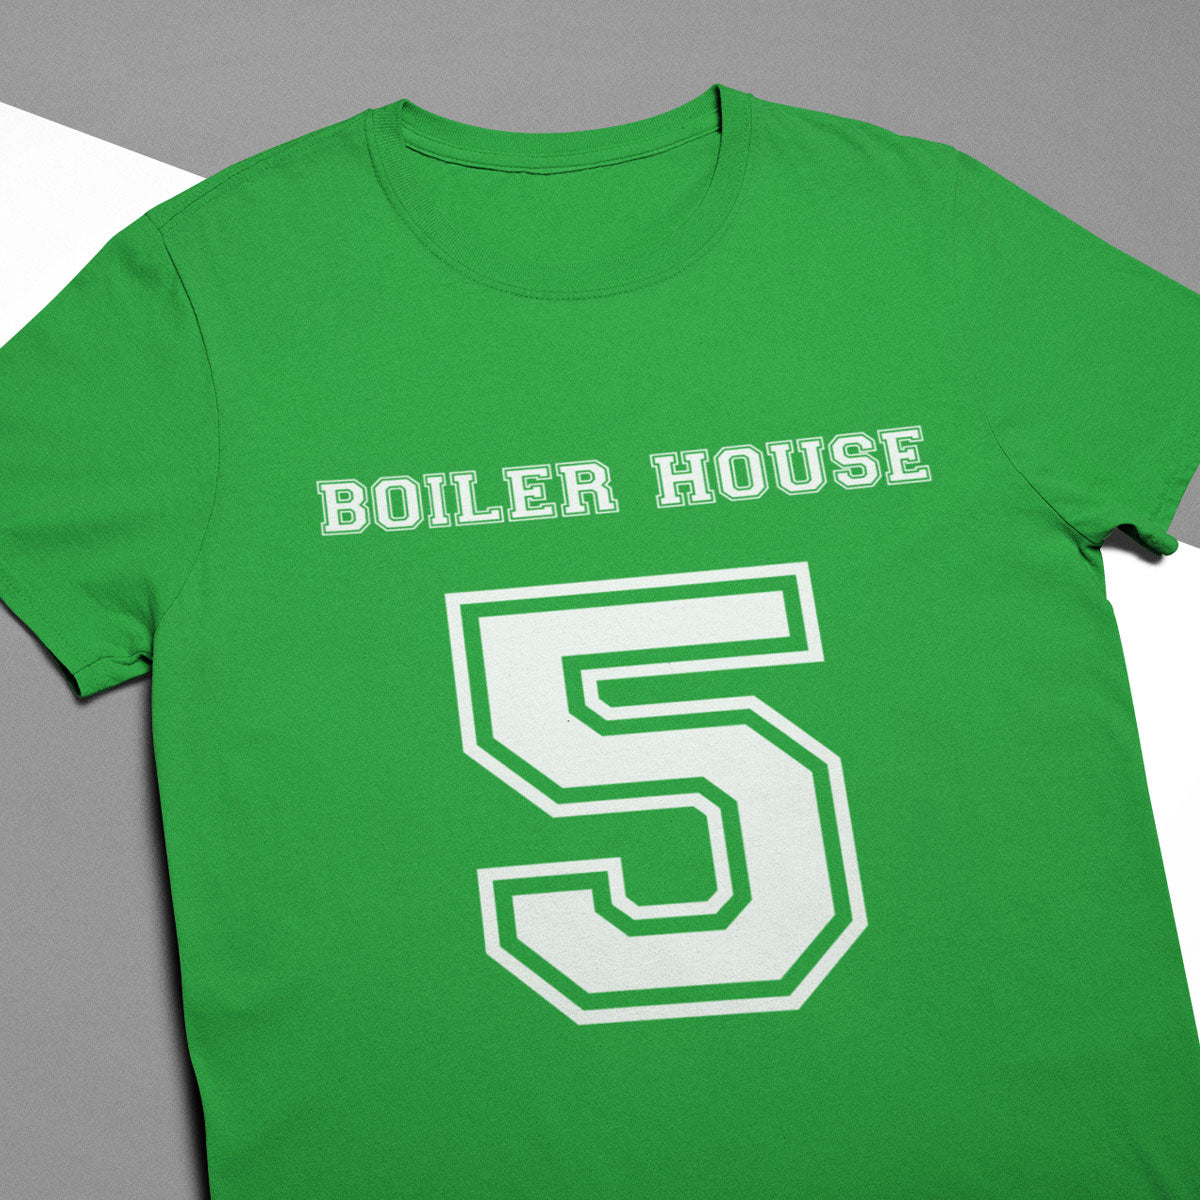 Boiler House Number 5 Rugby Tee - First XV rugbystuff.com